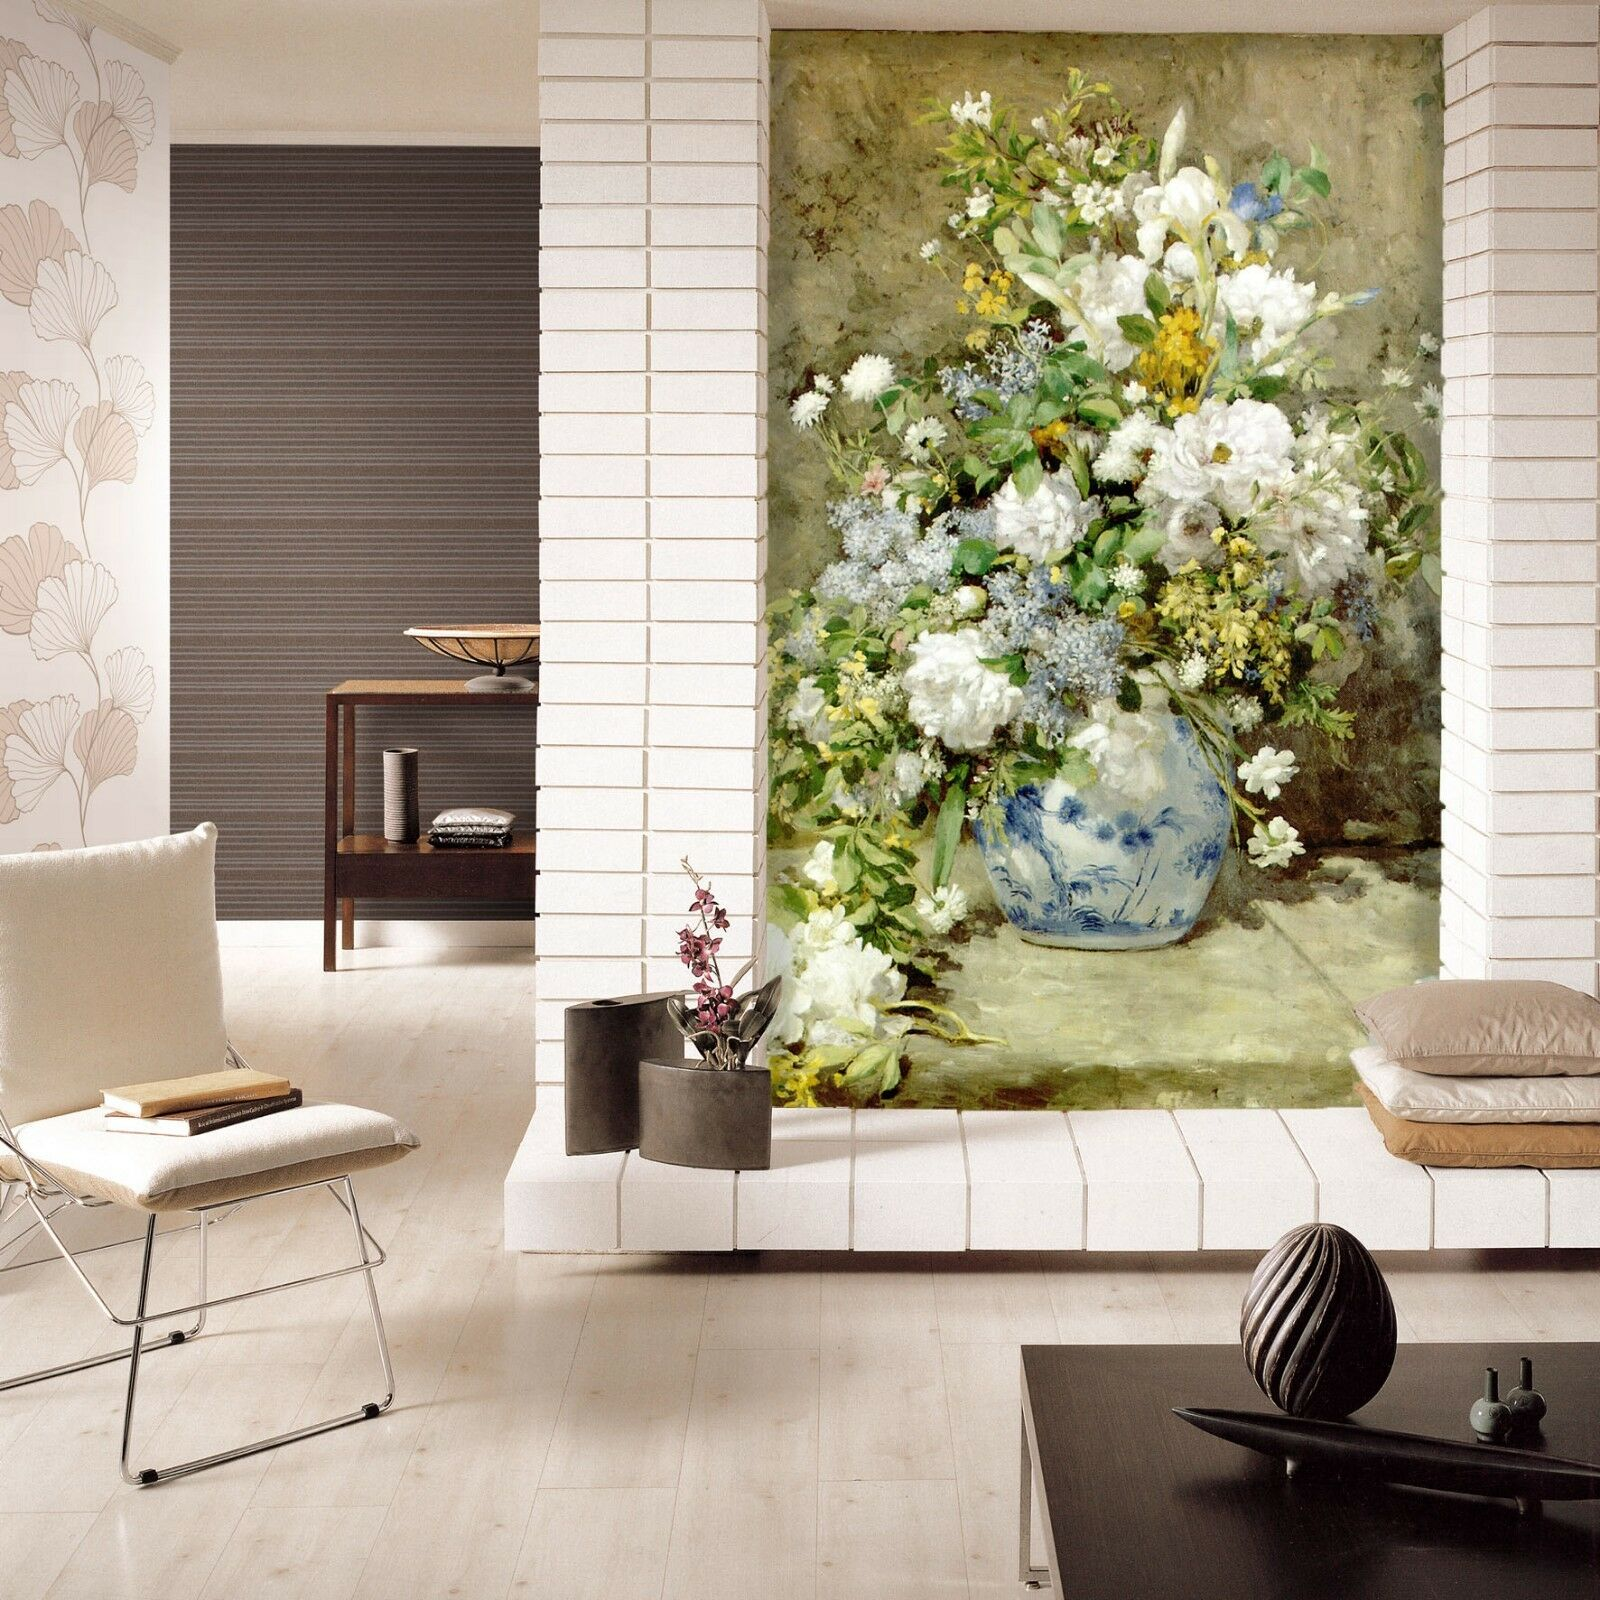 3D Farbeed Jardiniere Paper Wall Print Wall Decal Wall Deco Indoor Murals